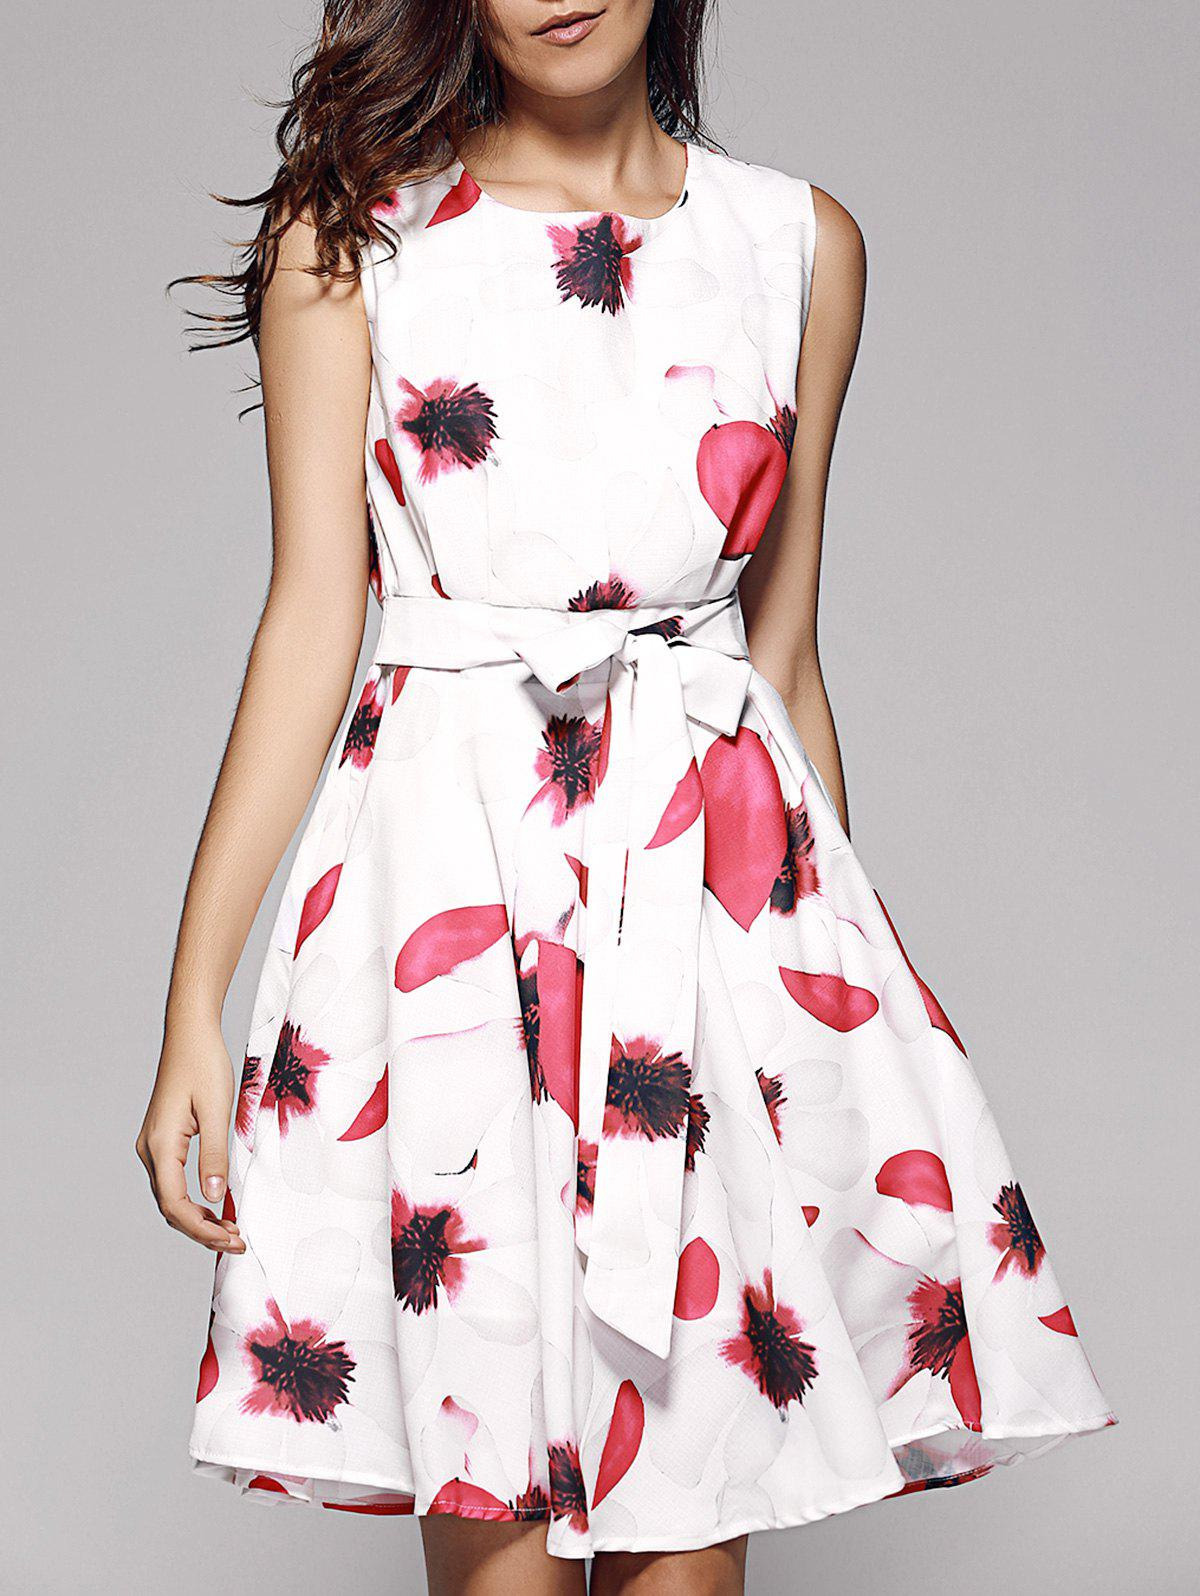 Floral Bowtie Fit and Flare Dress - WHITE S